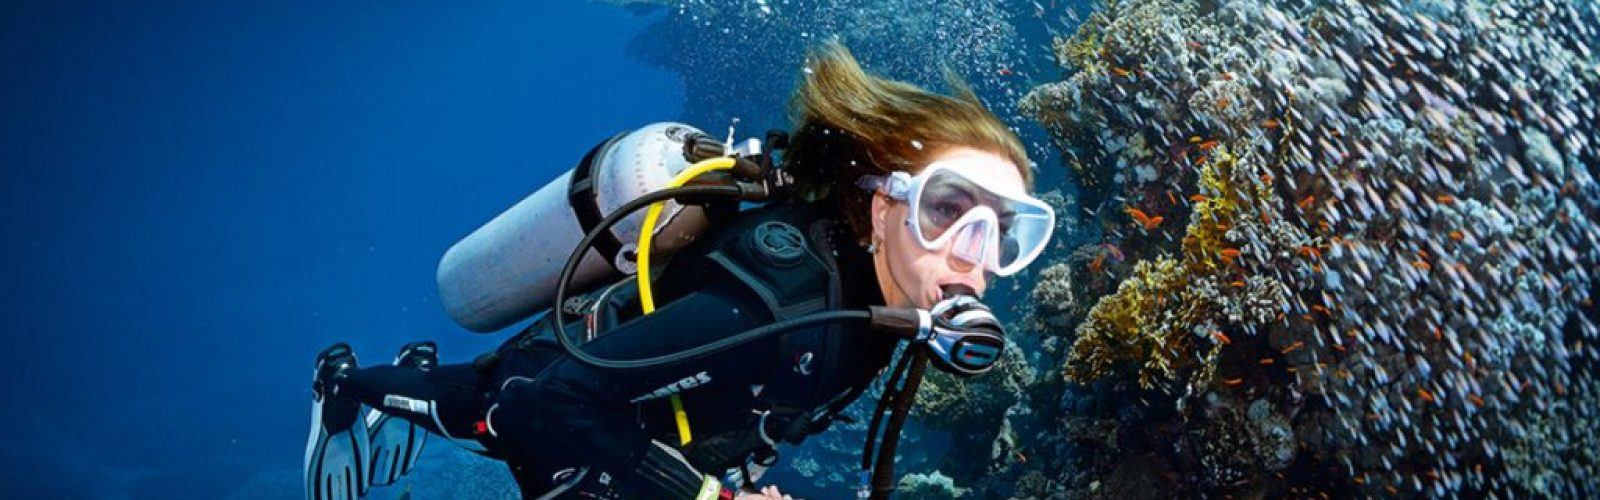 open-water-diver_video_1200x500